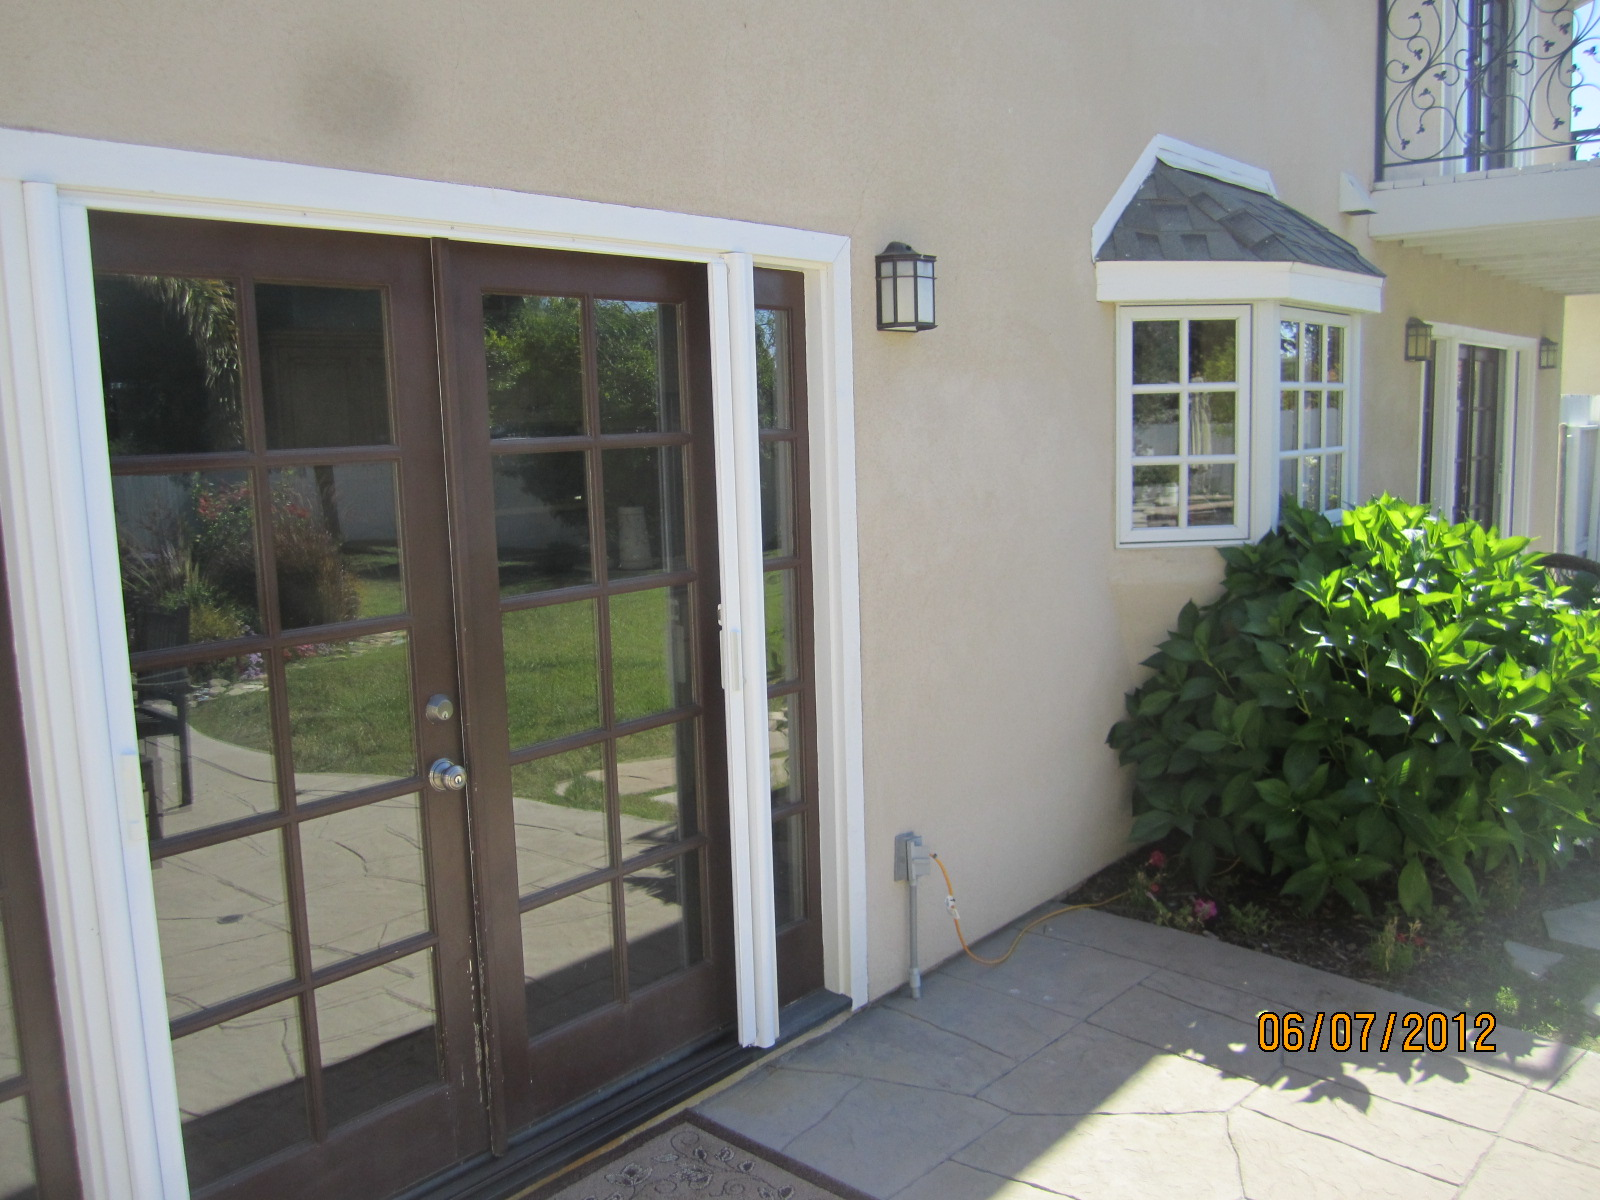 exterior view retracted french doors of retractable screen On exterior french doors with retractable screens